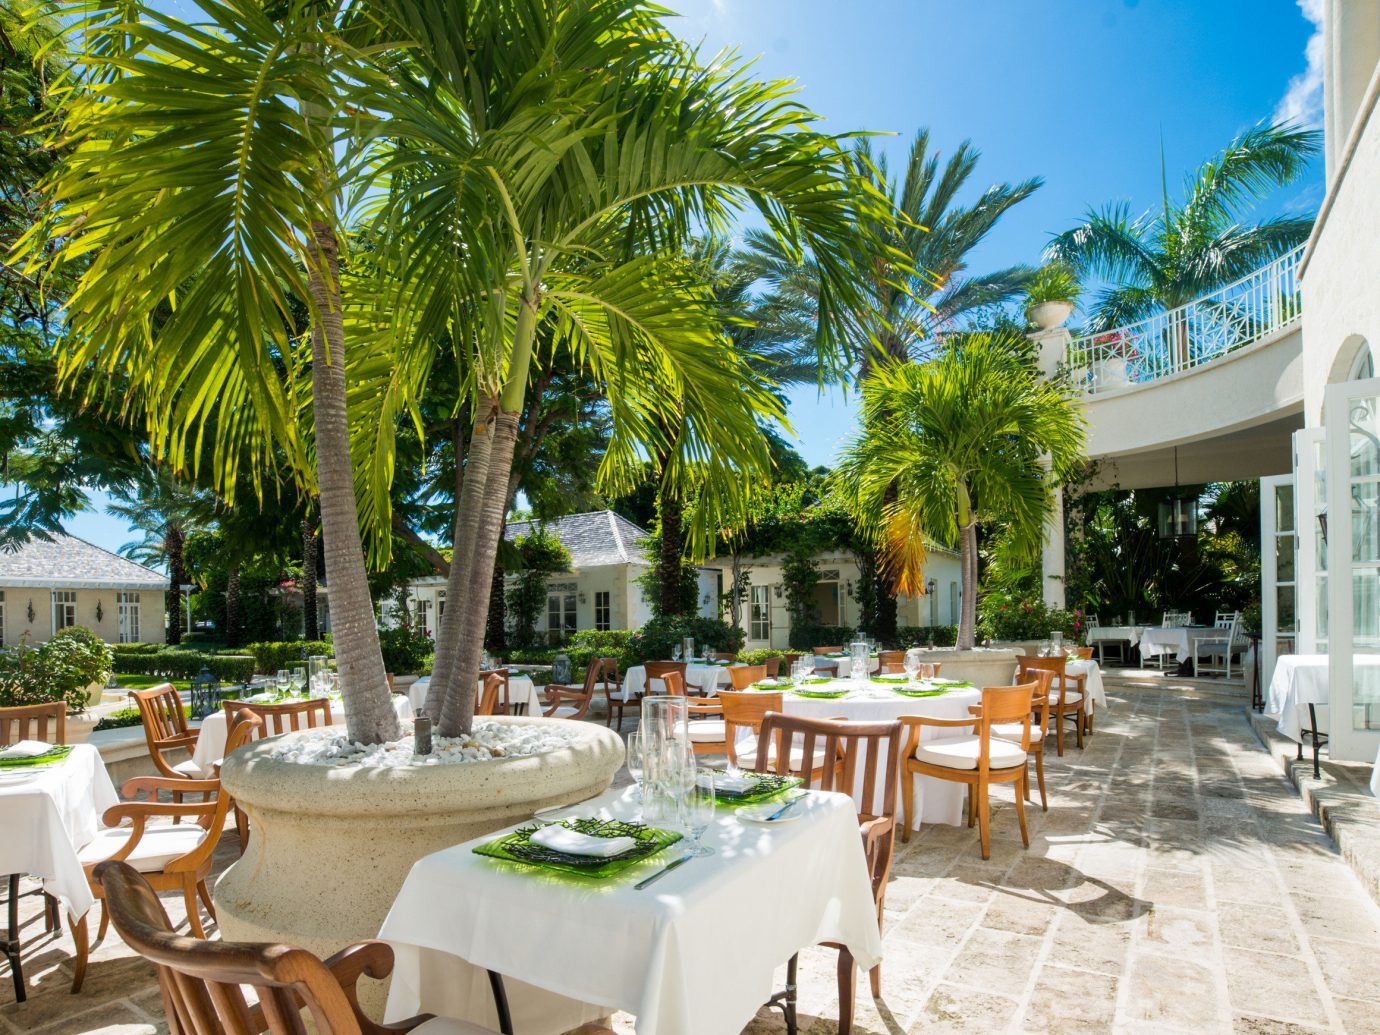 Hotels Romance tree table outdoor chair Resort restaurant Dining estate vacation arecales meal caribbean plaza area palm furniture plant Garden